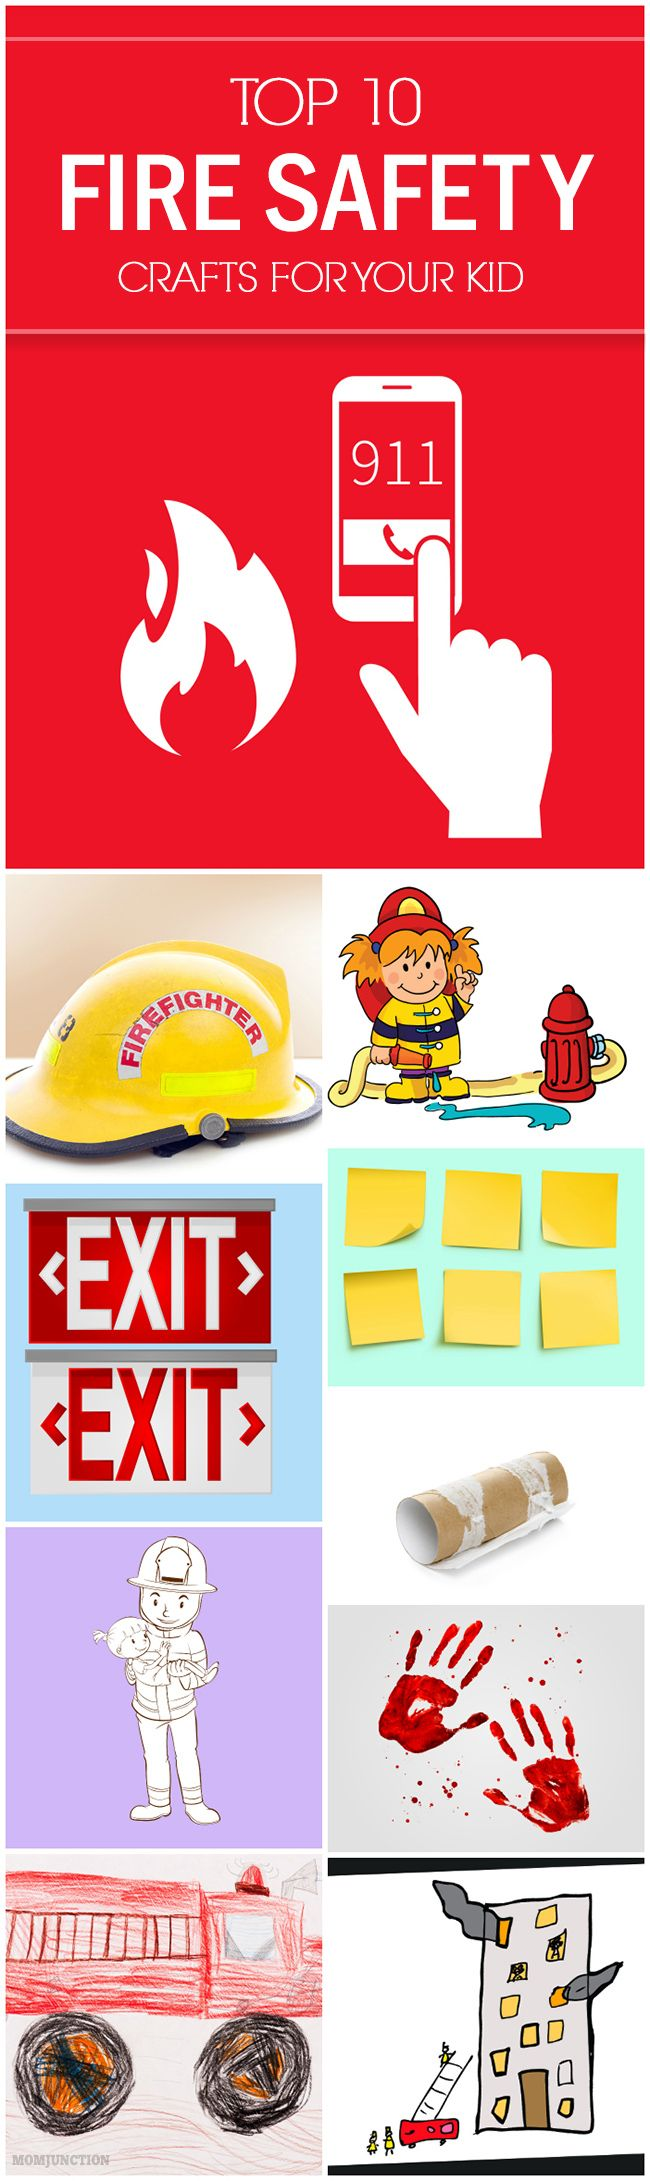 Fire Safety Crafts For Kids: the article on fire safety crafts will be just perfect for you. Read on to know about some interesting #craft projects for your child to learn more about fire safety.